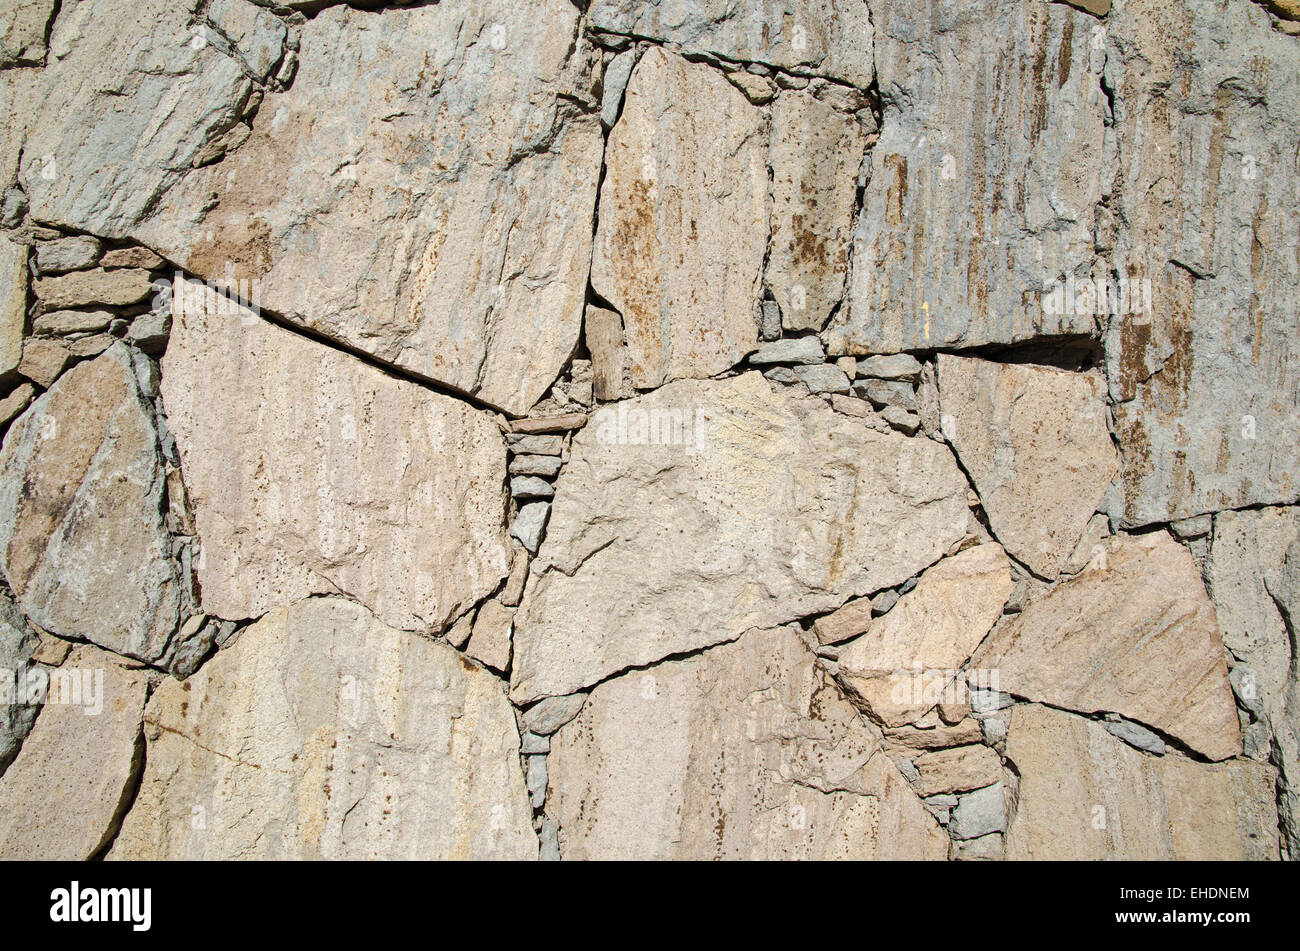 Bright sunlit stone wall background - Stock Image